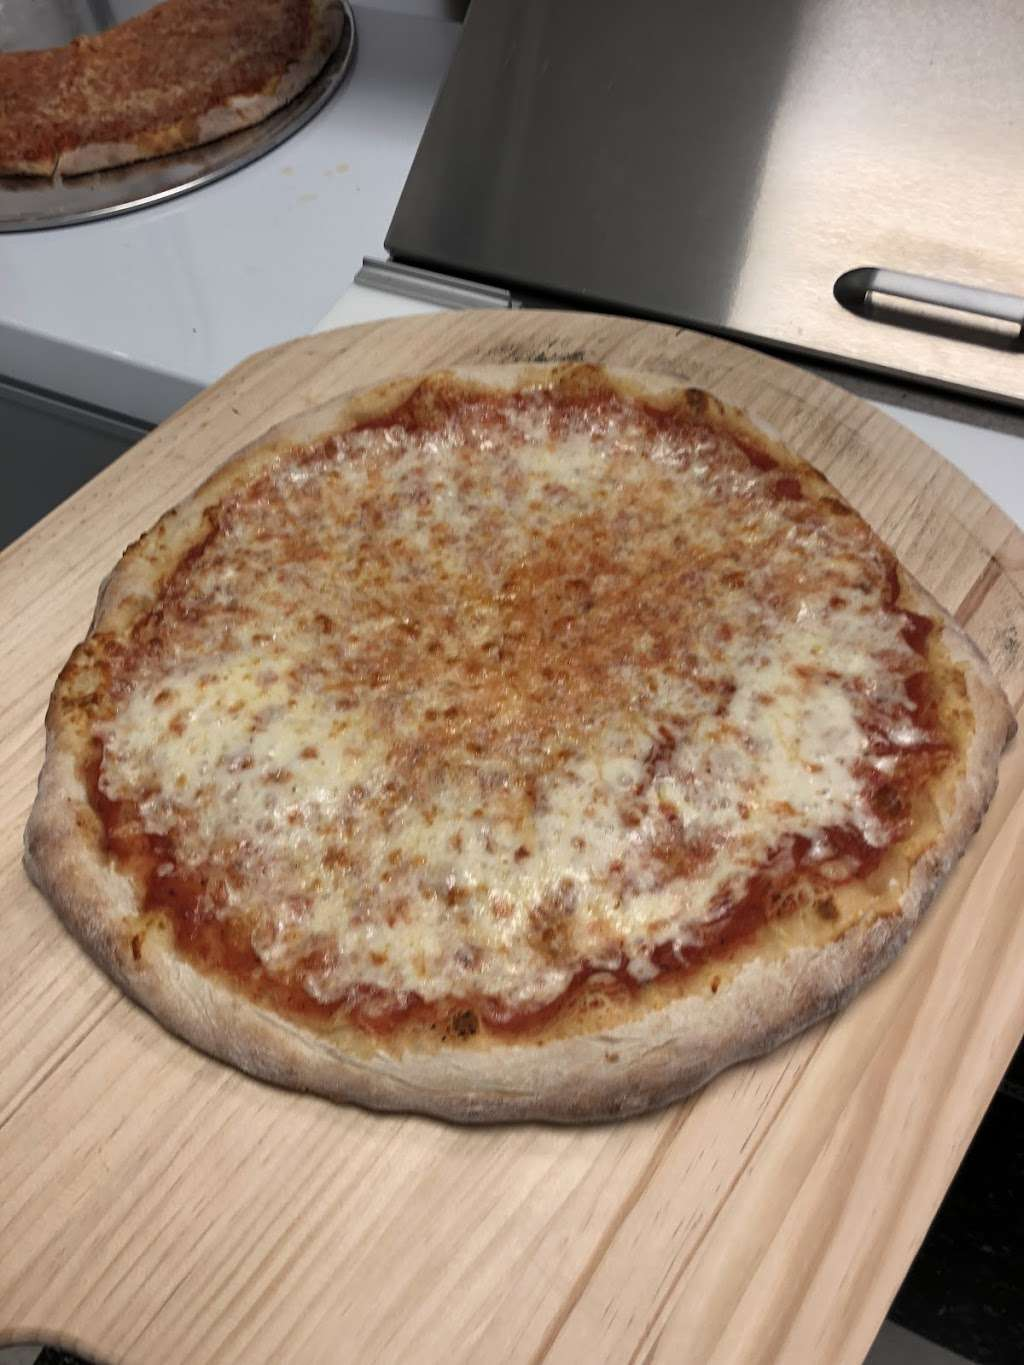 Alloway Pizza and grill - restaurant    Photo 2 of 6   Address: 3 S Greenwich St, Alloway, NJ 08001, USA   Phone: (856) 279-2332